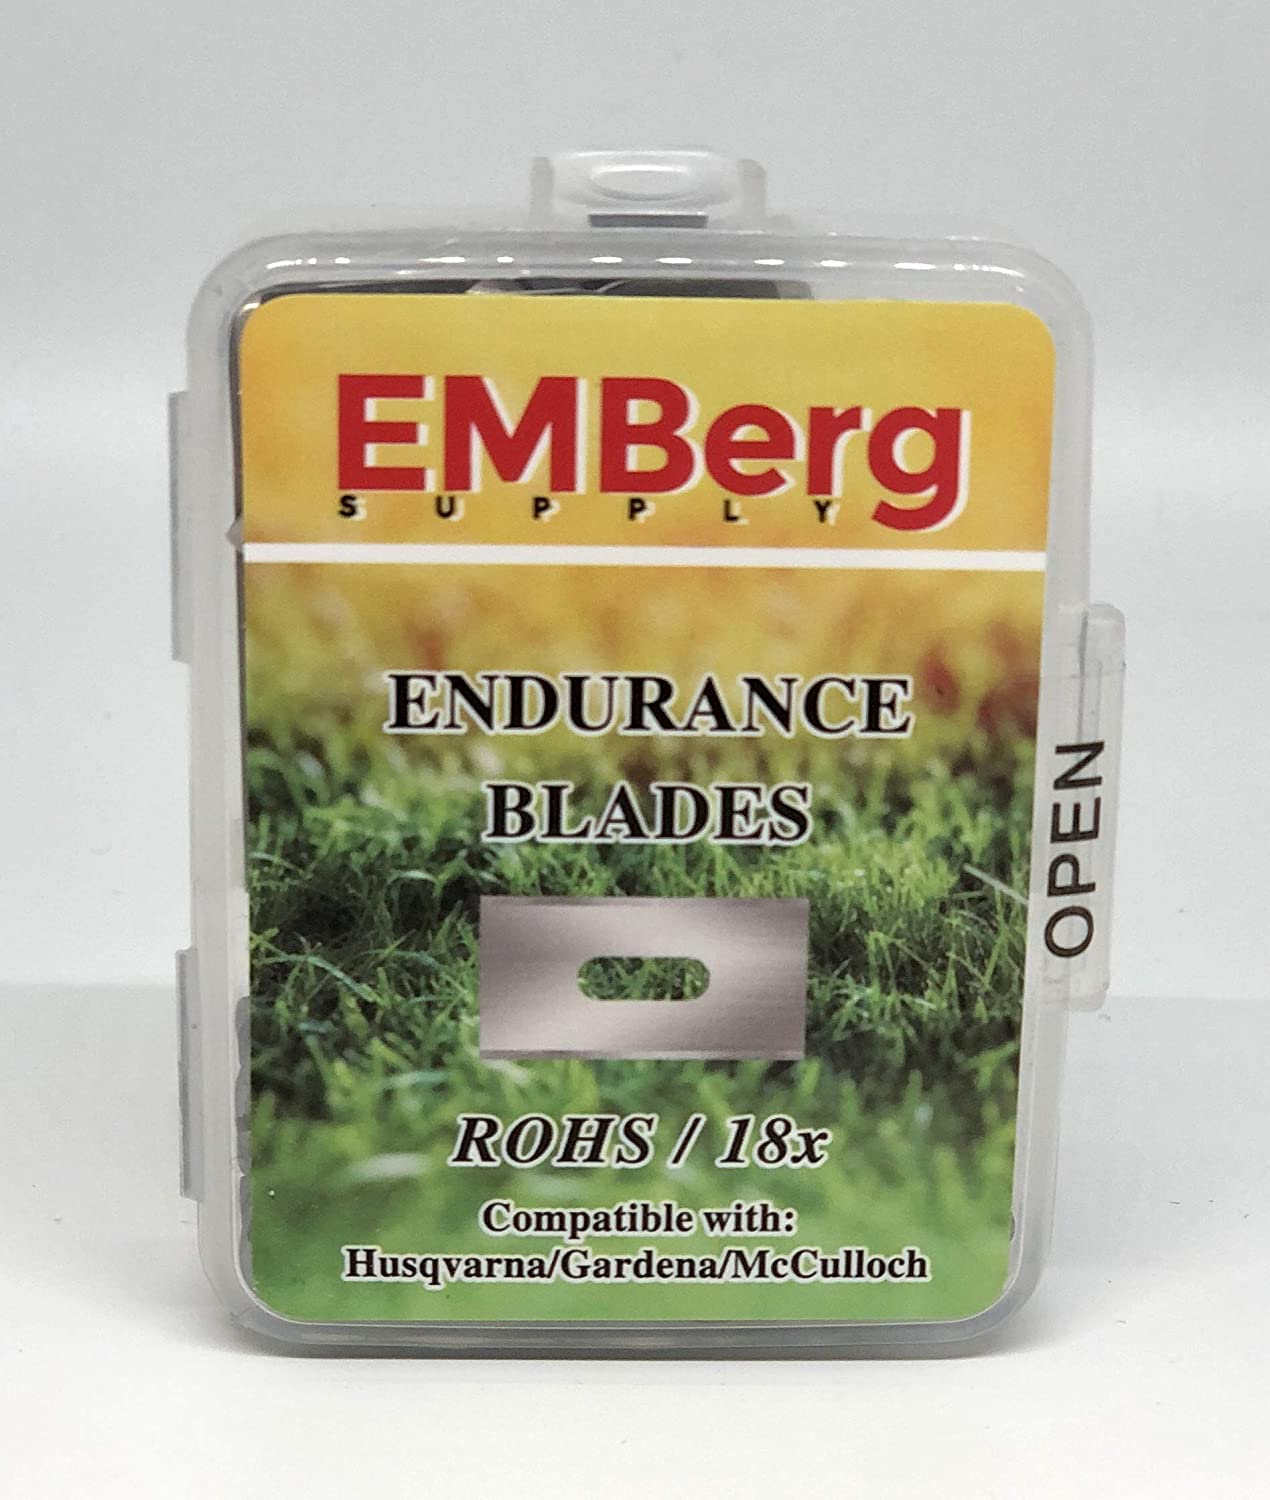 EMBergSupply Endurance Blades for All Husqvarna Automower/Gardena Robotic Lawnmowers, with Screw (Steel)…